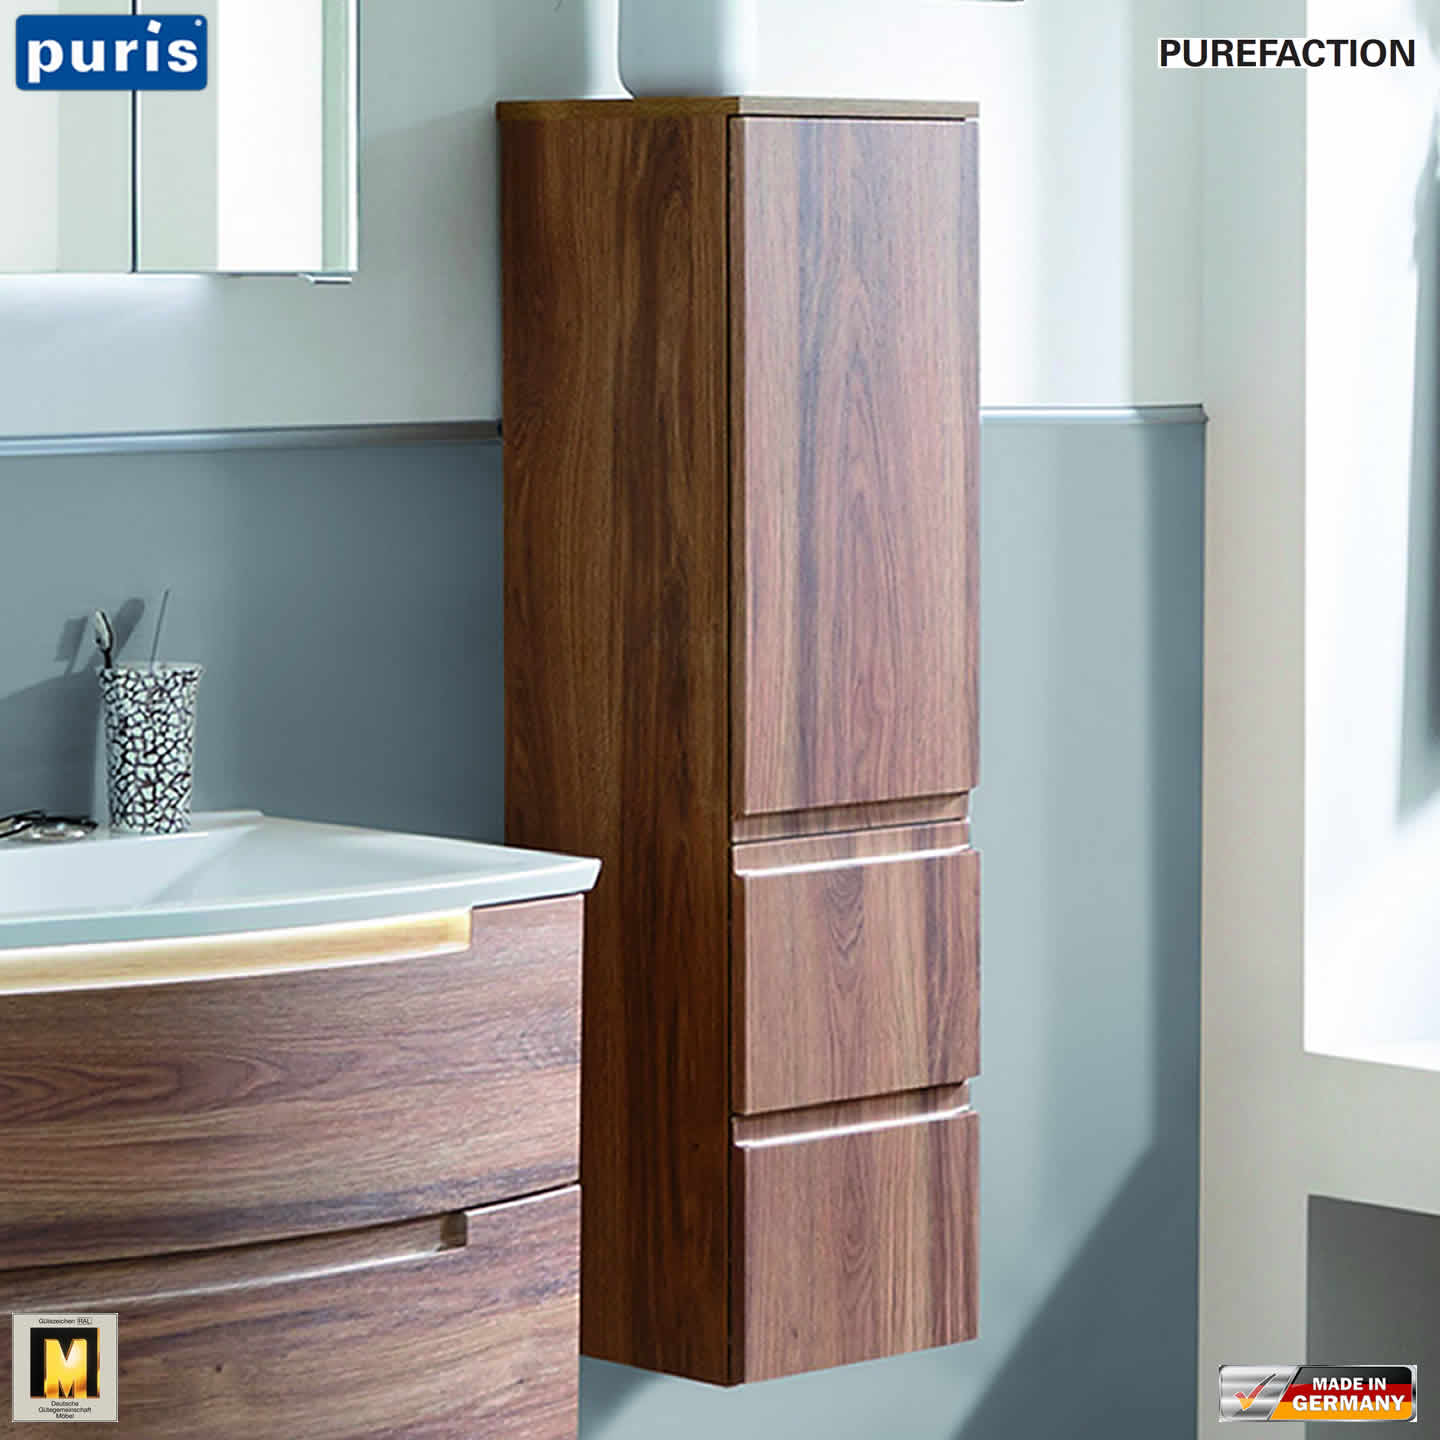 puris purefaction mittelschrank 1 t r 2 ausz ge 30 cm breite impulsbad. Black Bedroom Furniture Sets. Home Design Ideas